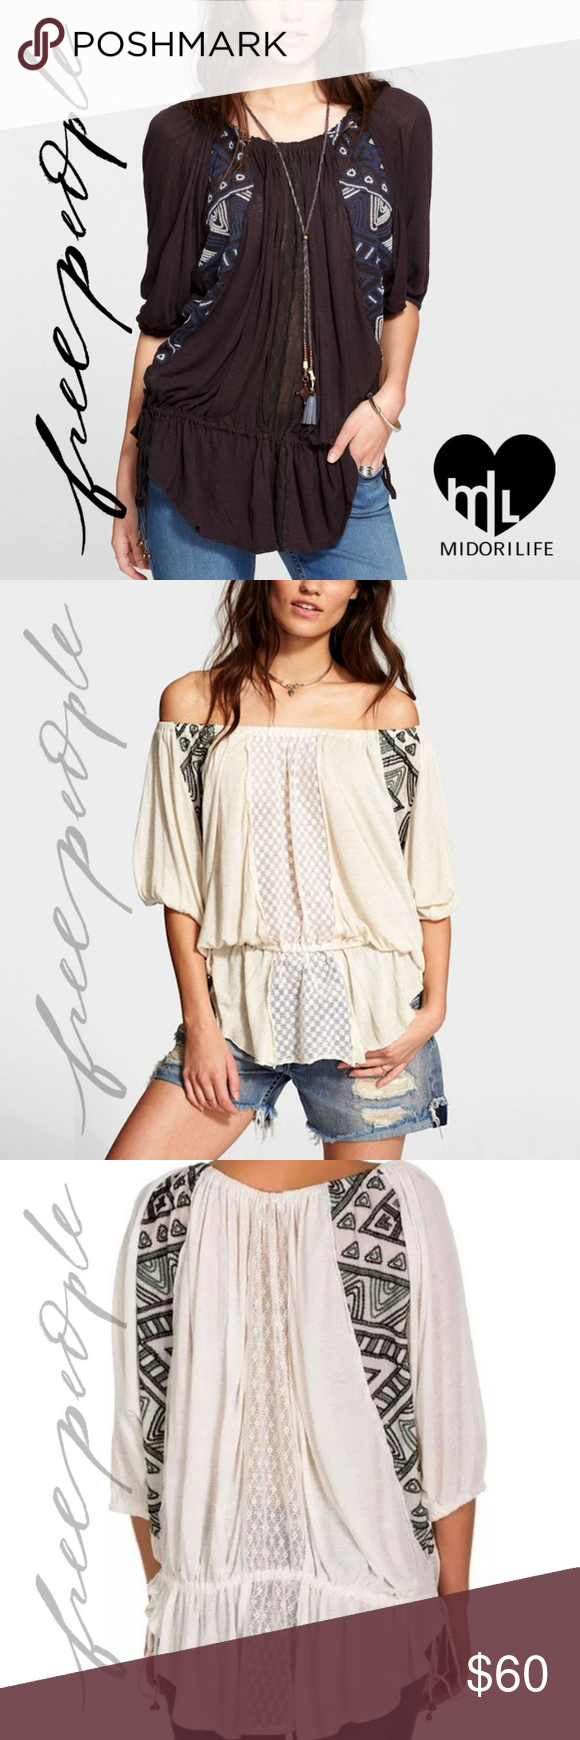 33cb28e6ecb FREE PEOPLE New World Off Butterfly Tunic Very versatile tribal-inspired  top. Wear off